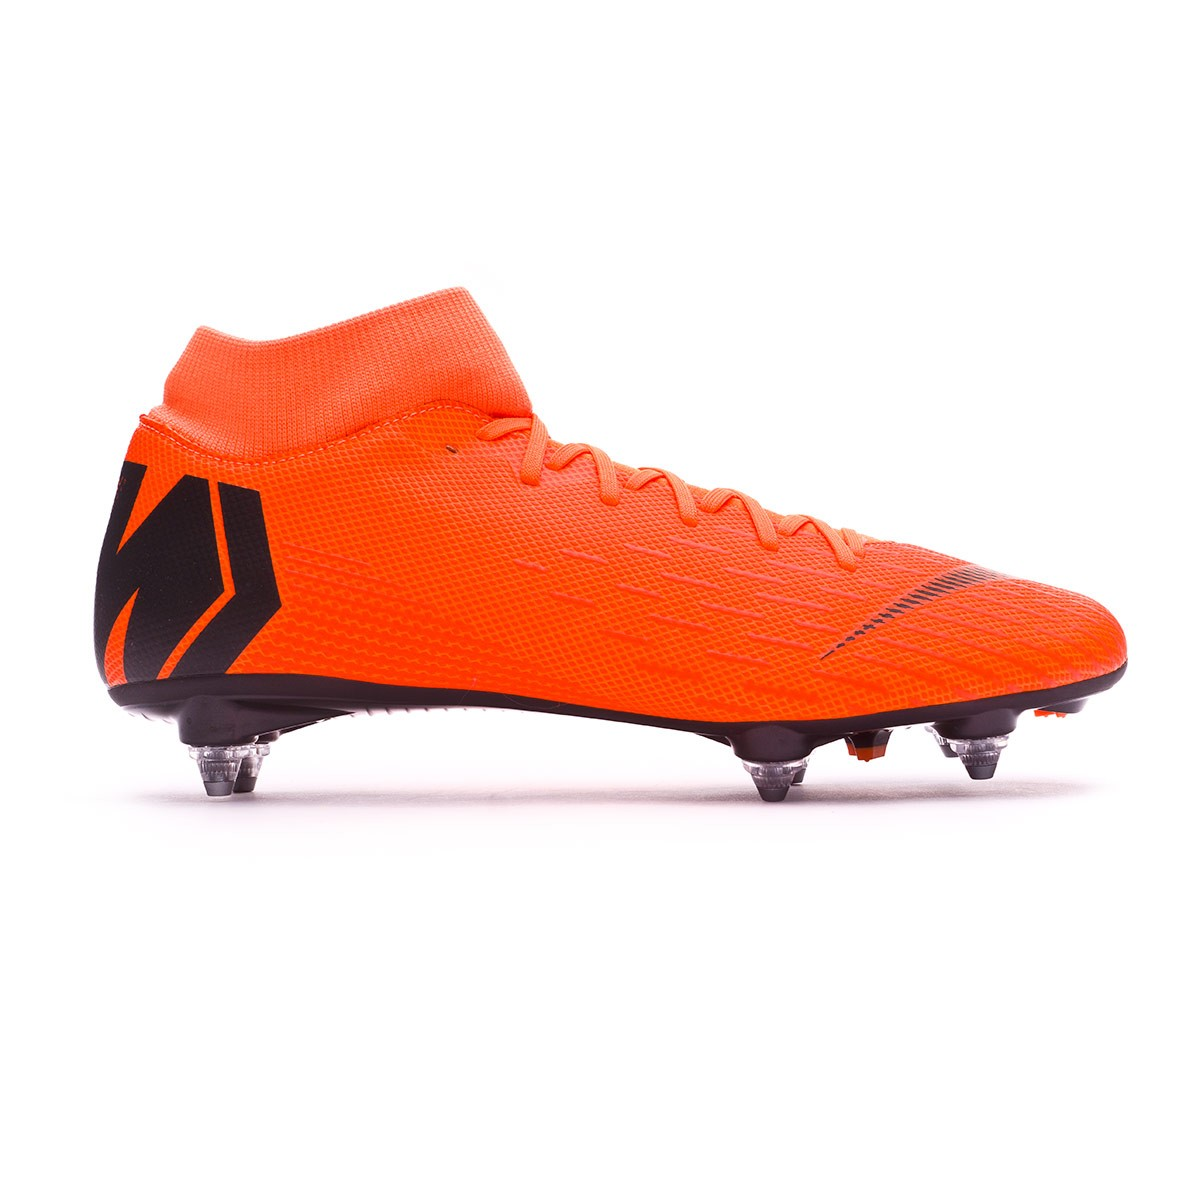 Football Boots Nike Mercurial Superfly Vi Academy Sg Pro